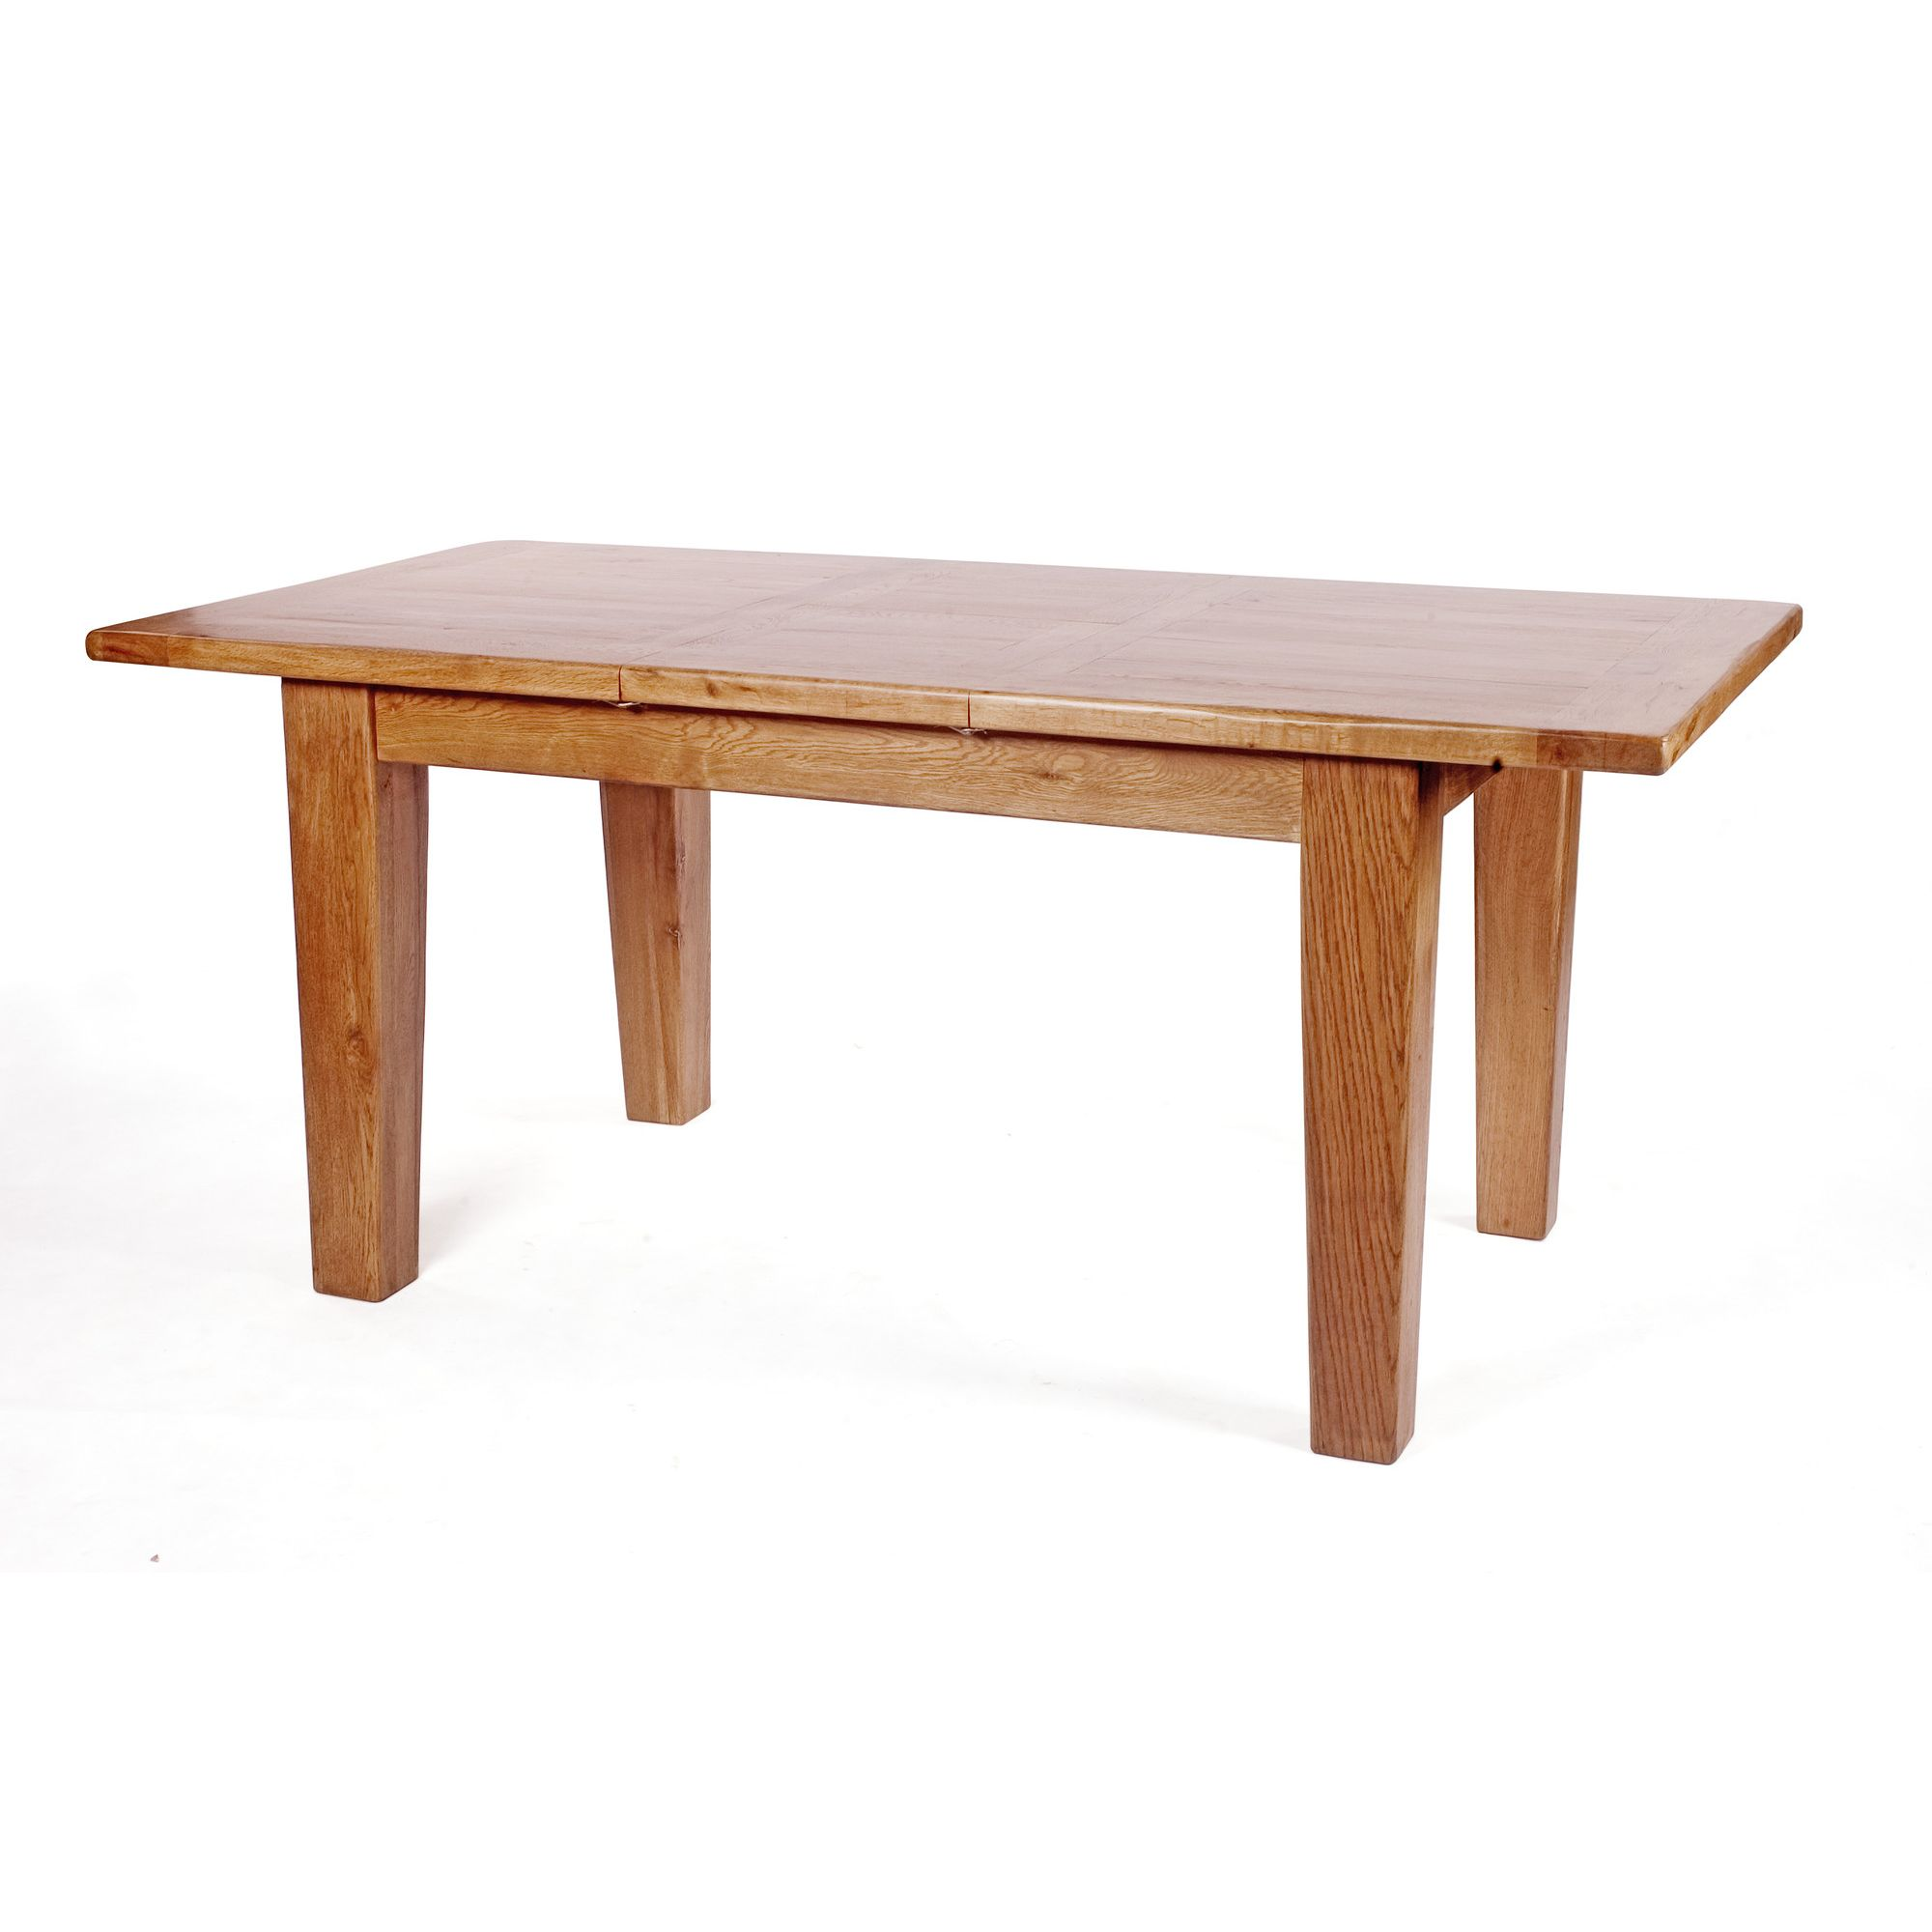 Wiseaction Florence Extension Solid Oak Dining Table - 180cm x 90cm